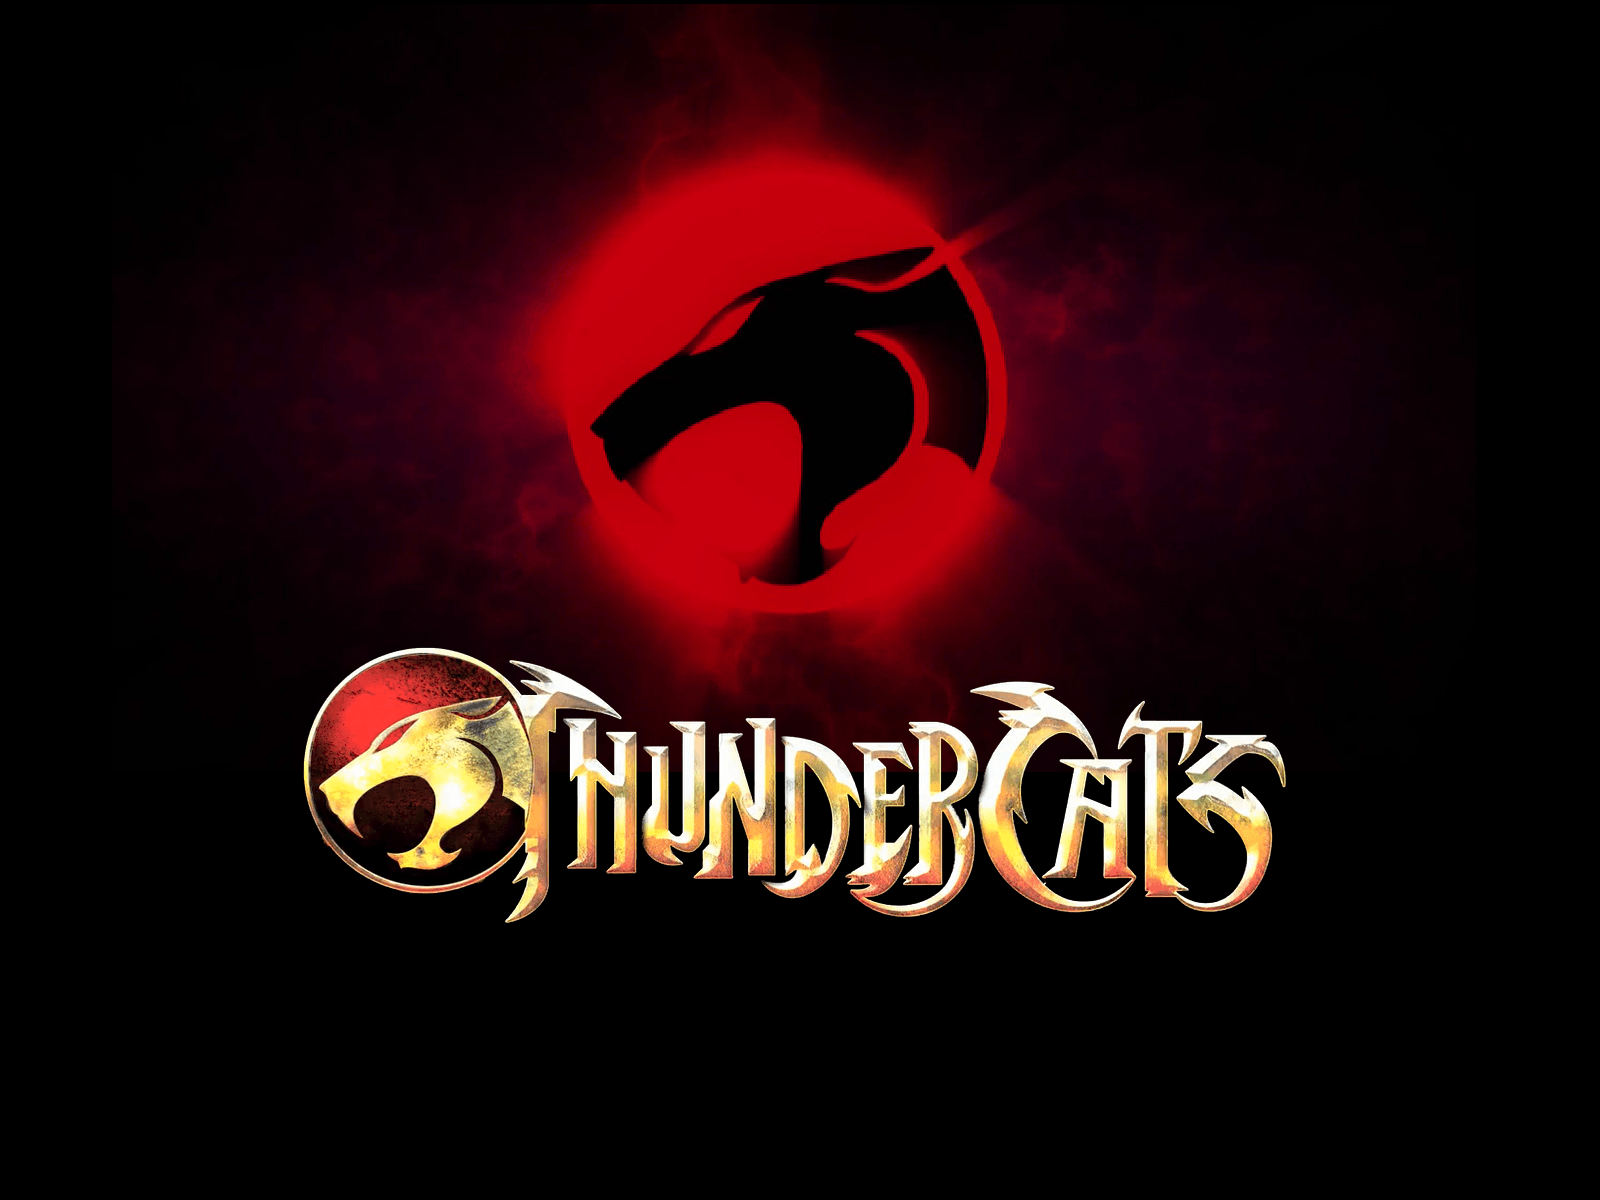 Thunder Cats Wallpapers - Wallpaper Cave